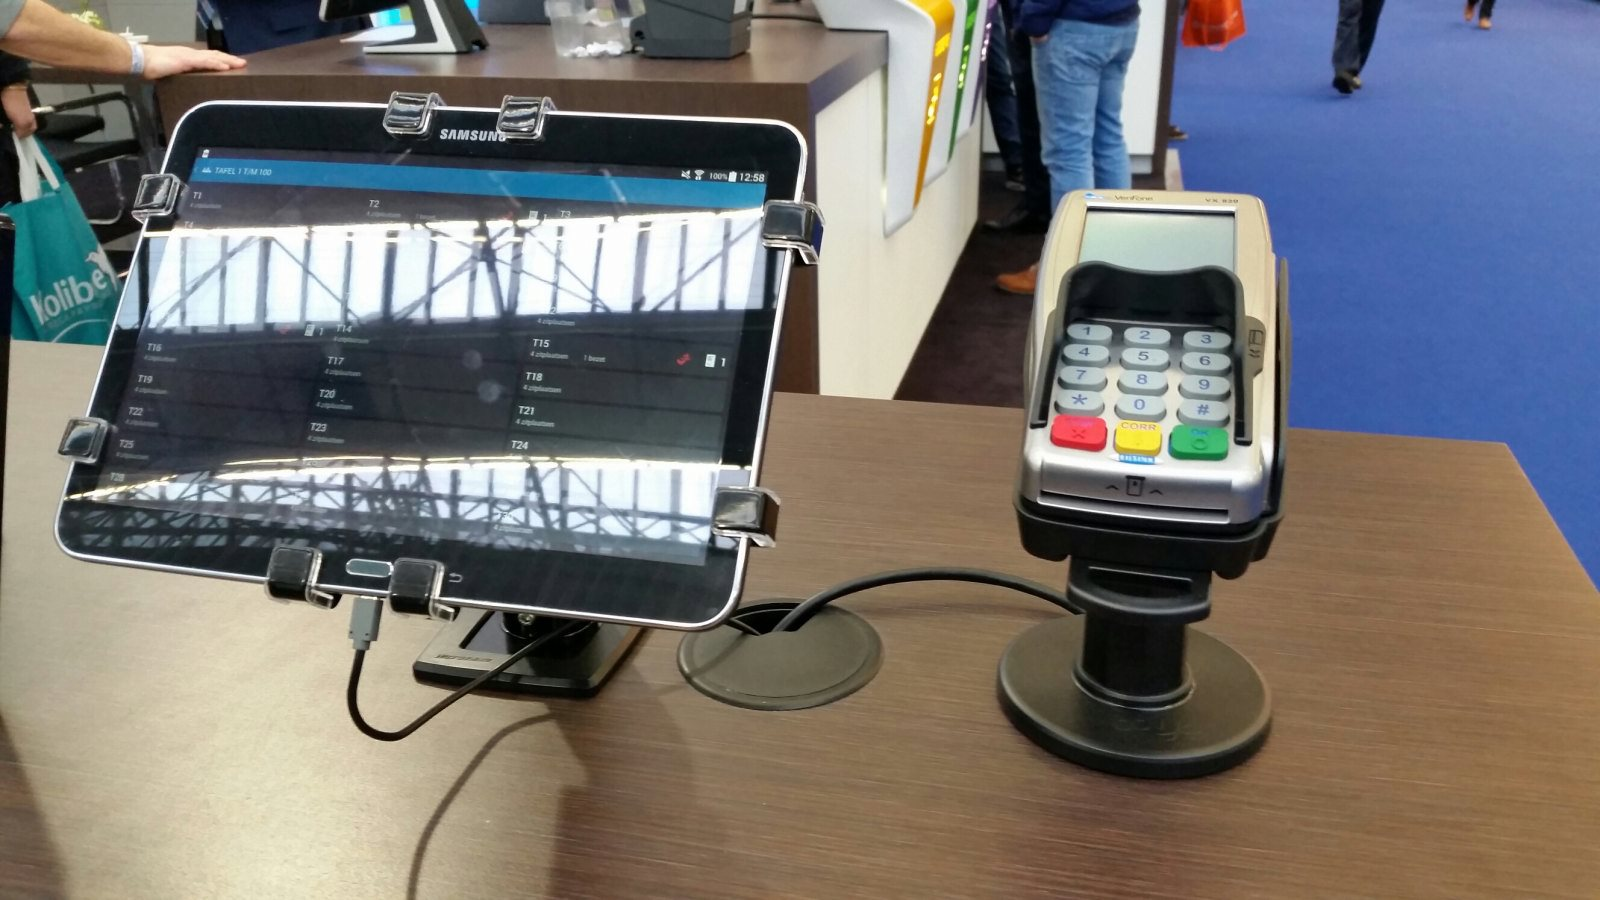 gripzo-retail-pos-grip-pin-device.jpg